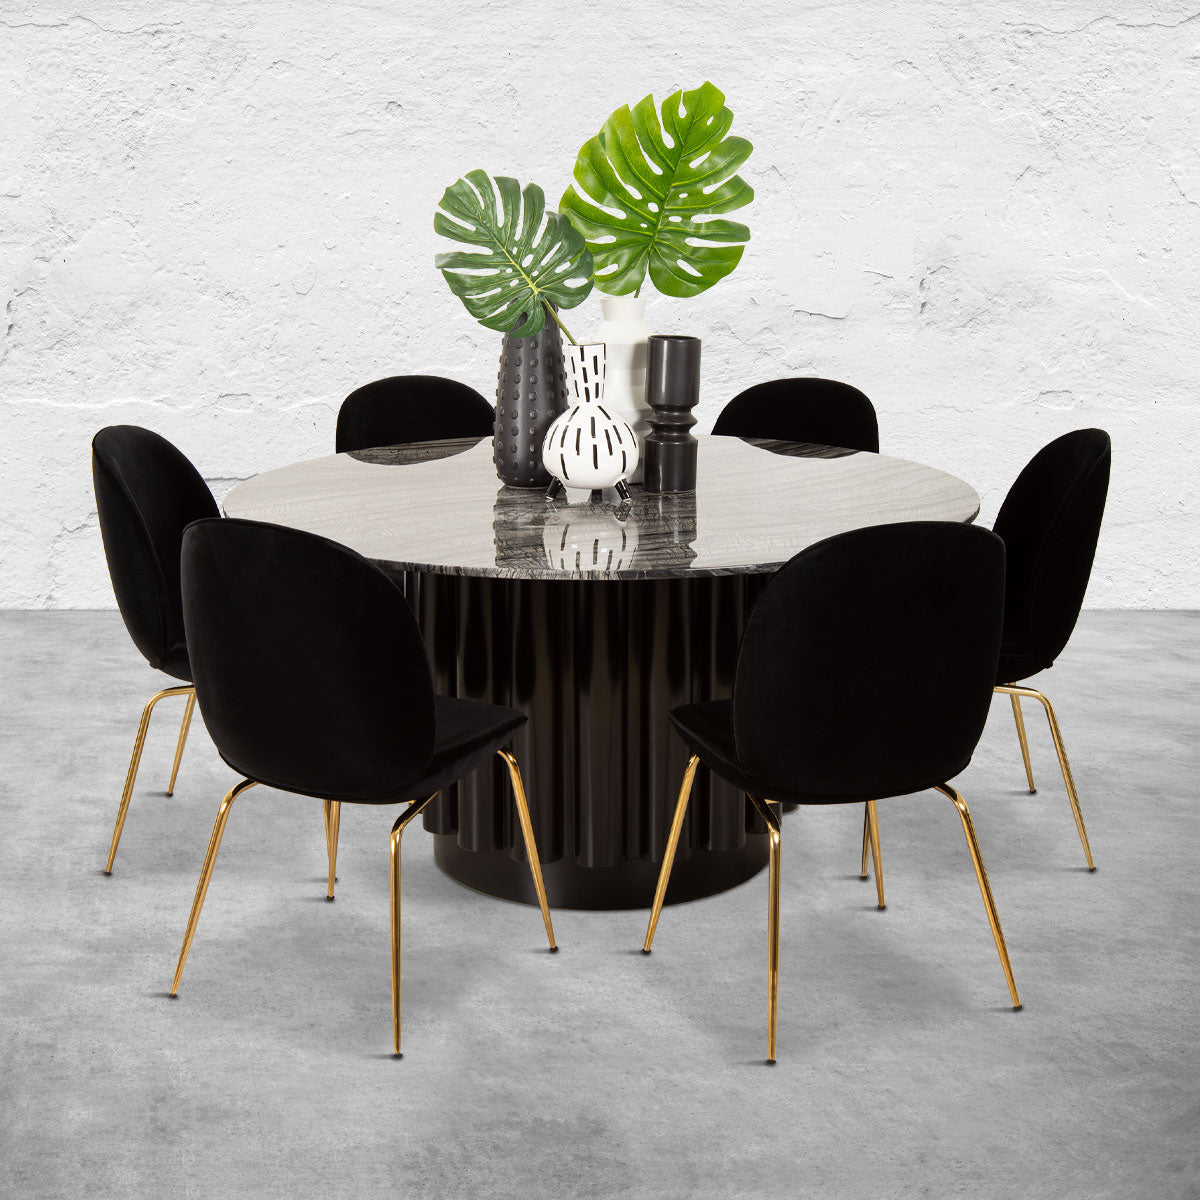 Round dining table with a black columnar base, a black marble top and six black upholstered chairs with brass legs.